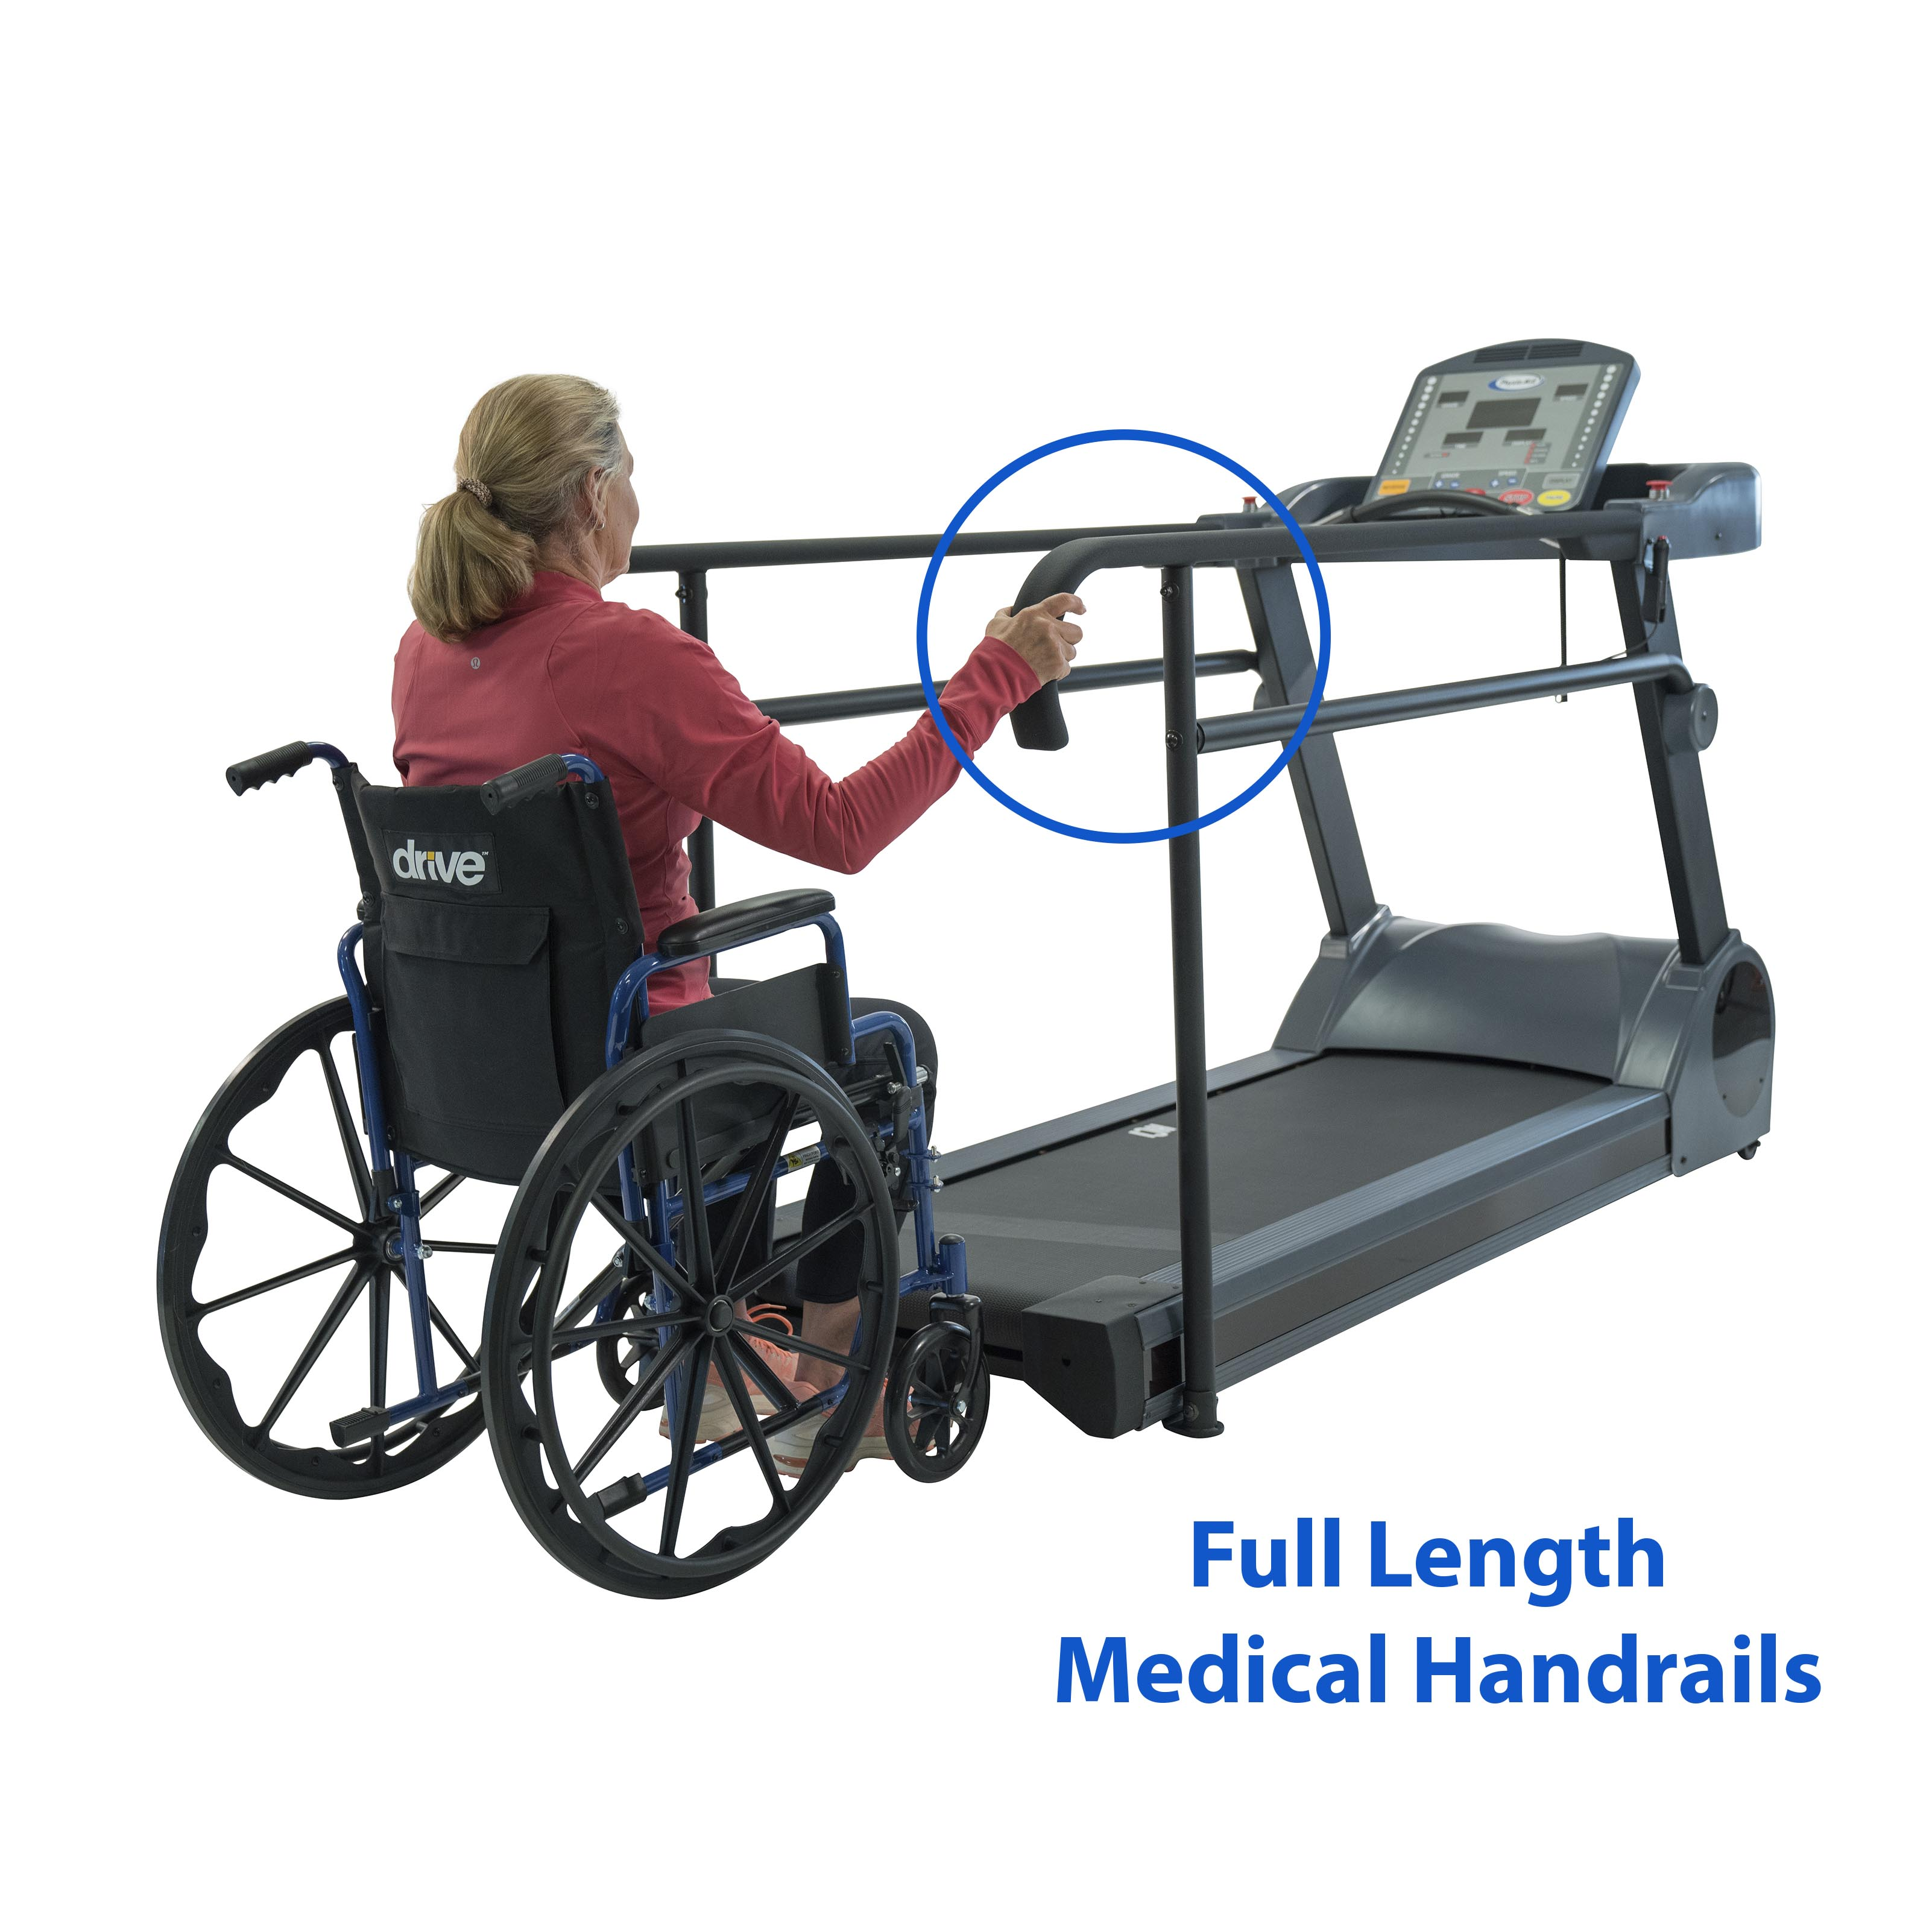 PhysioMill Rehabilitation Treadmill Wheel